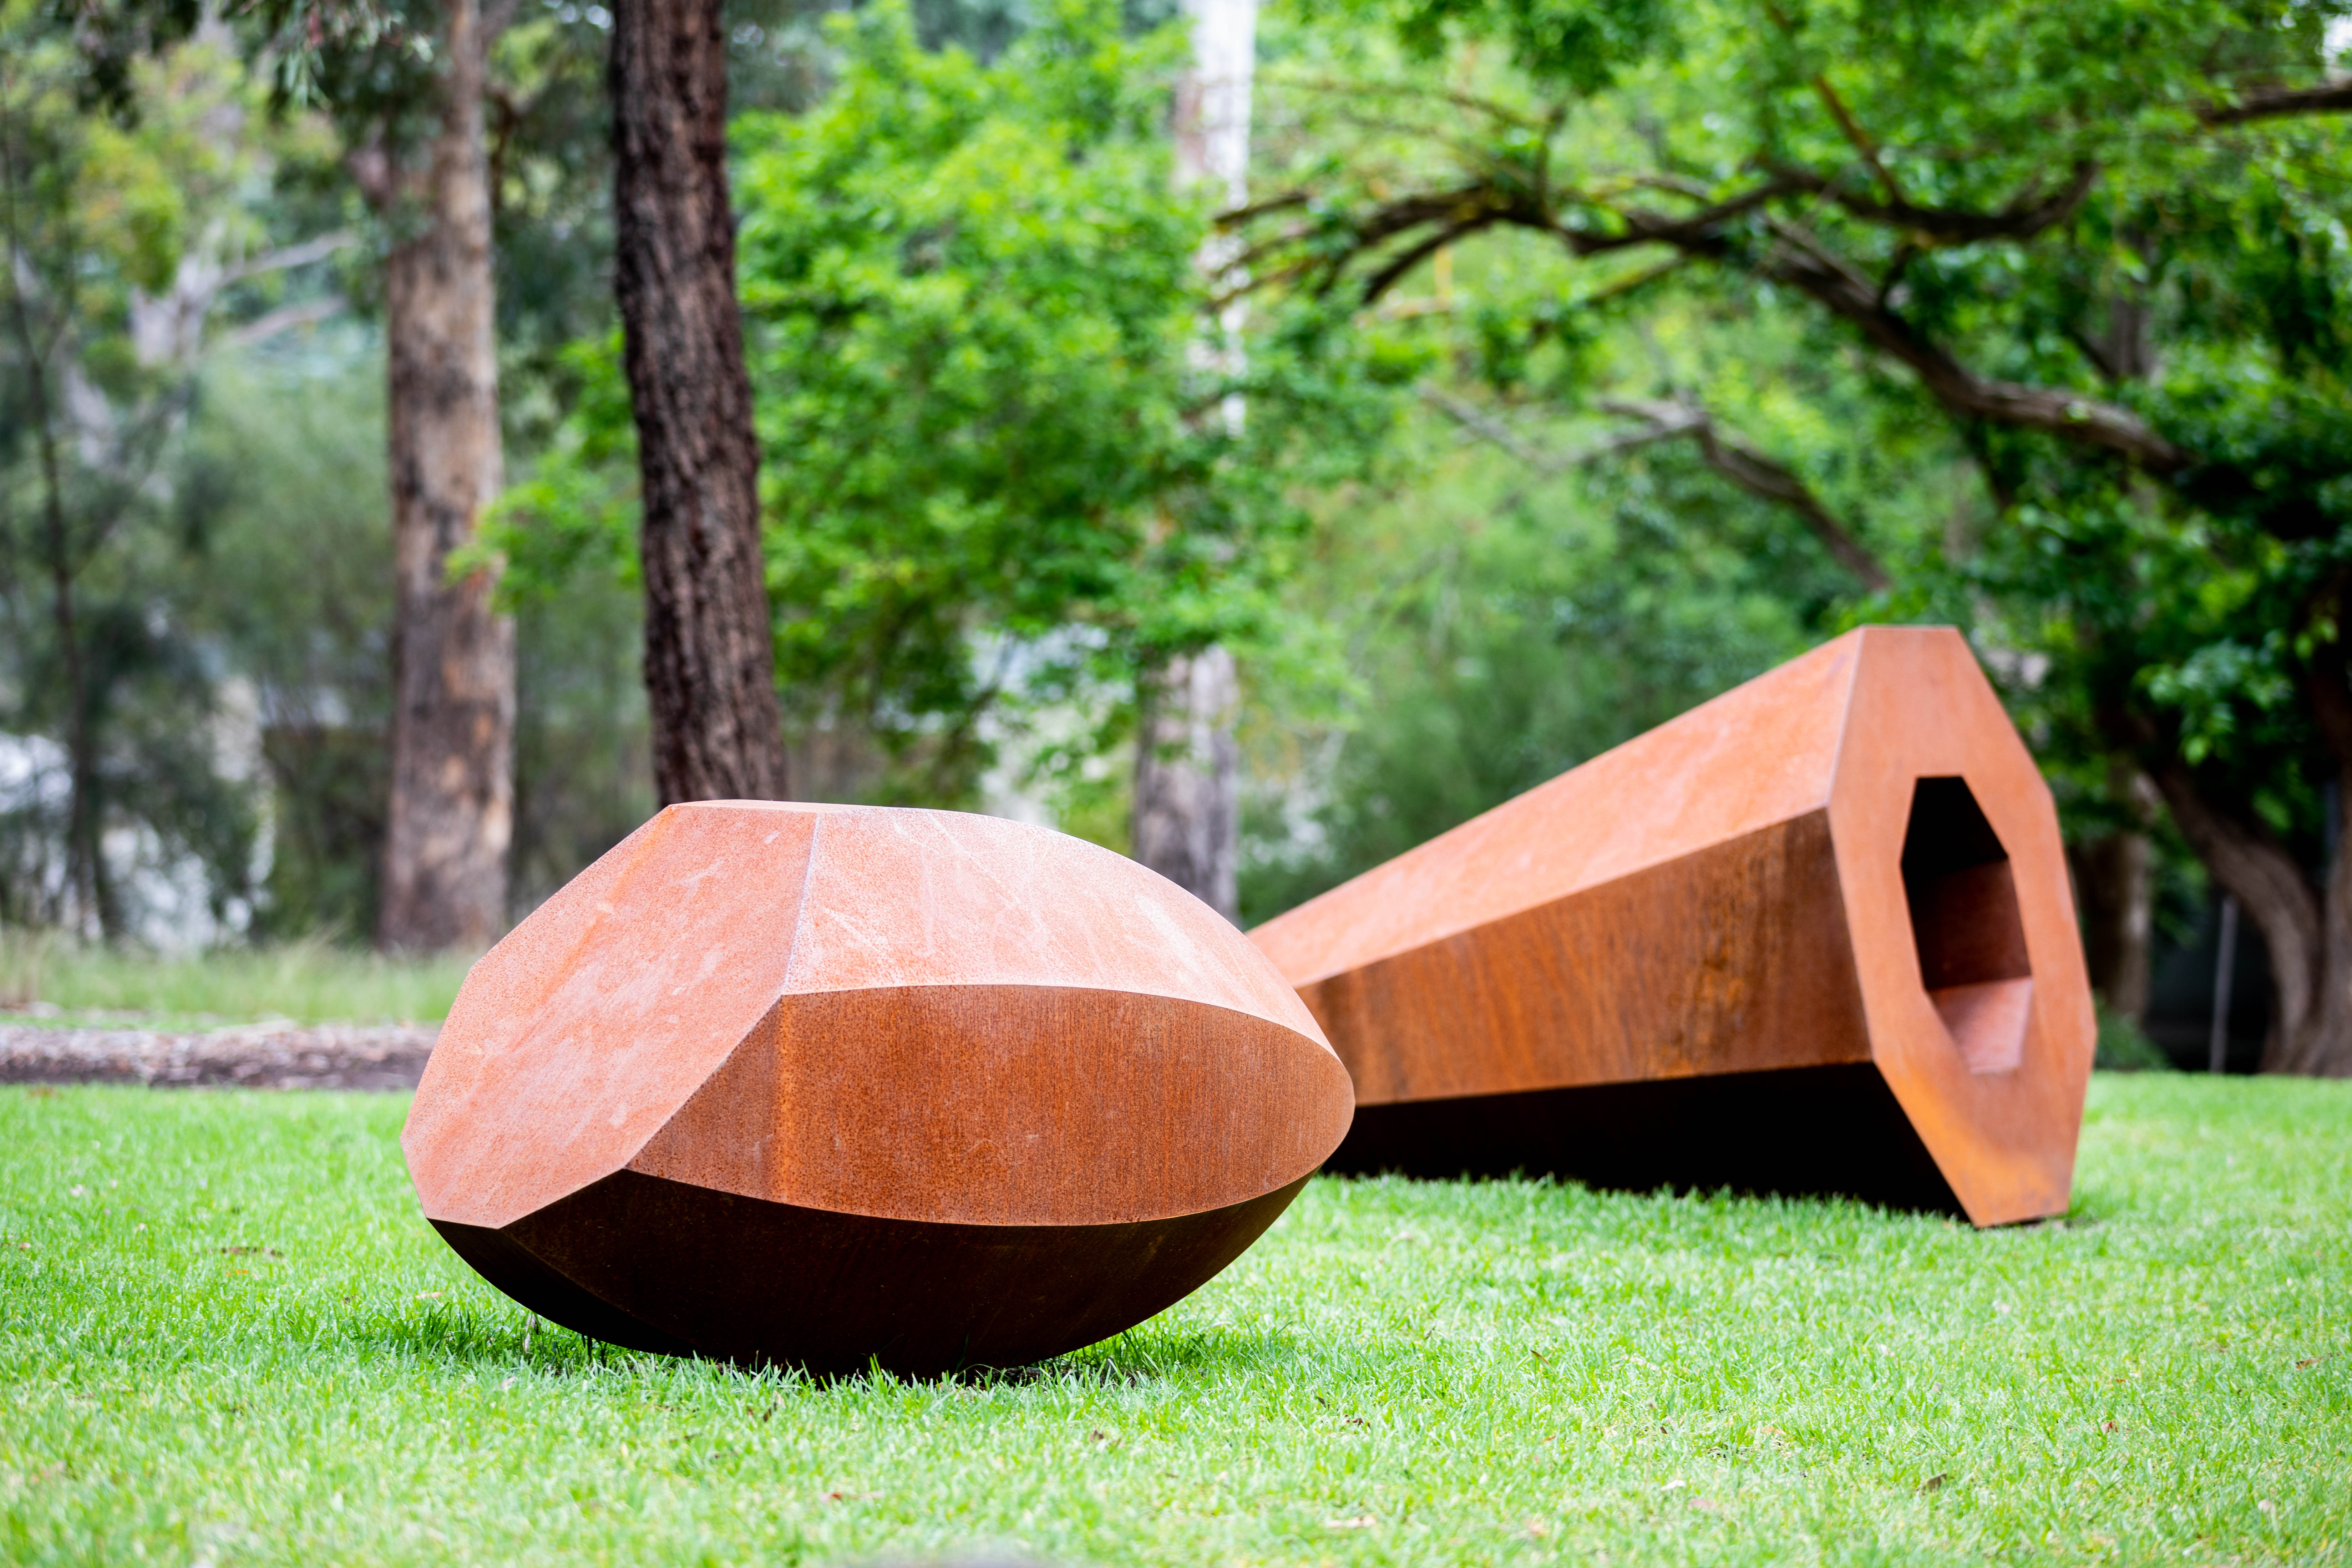 Rusted Metal Sculpture on Grass